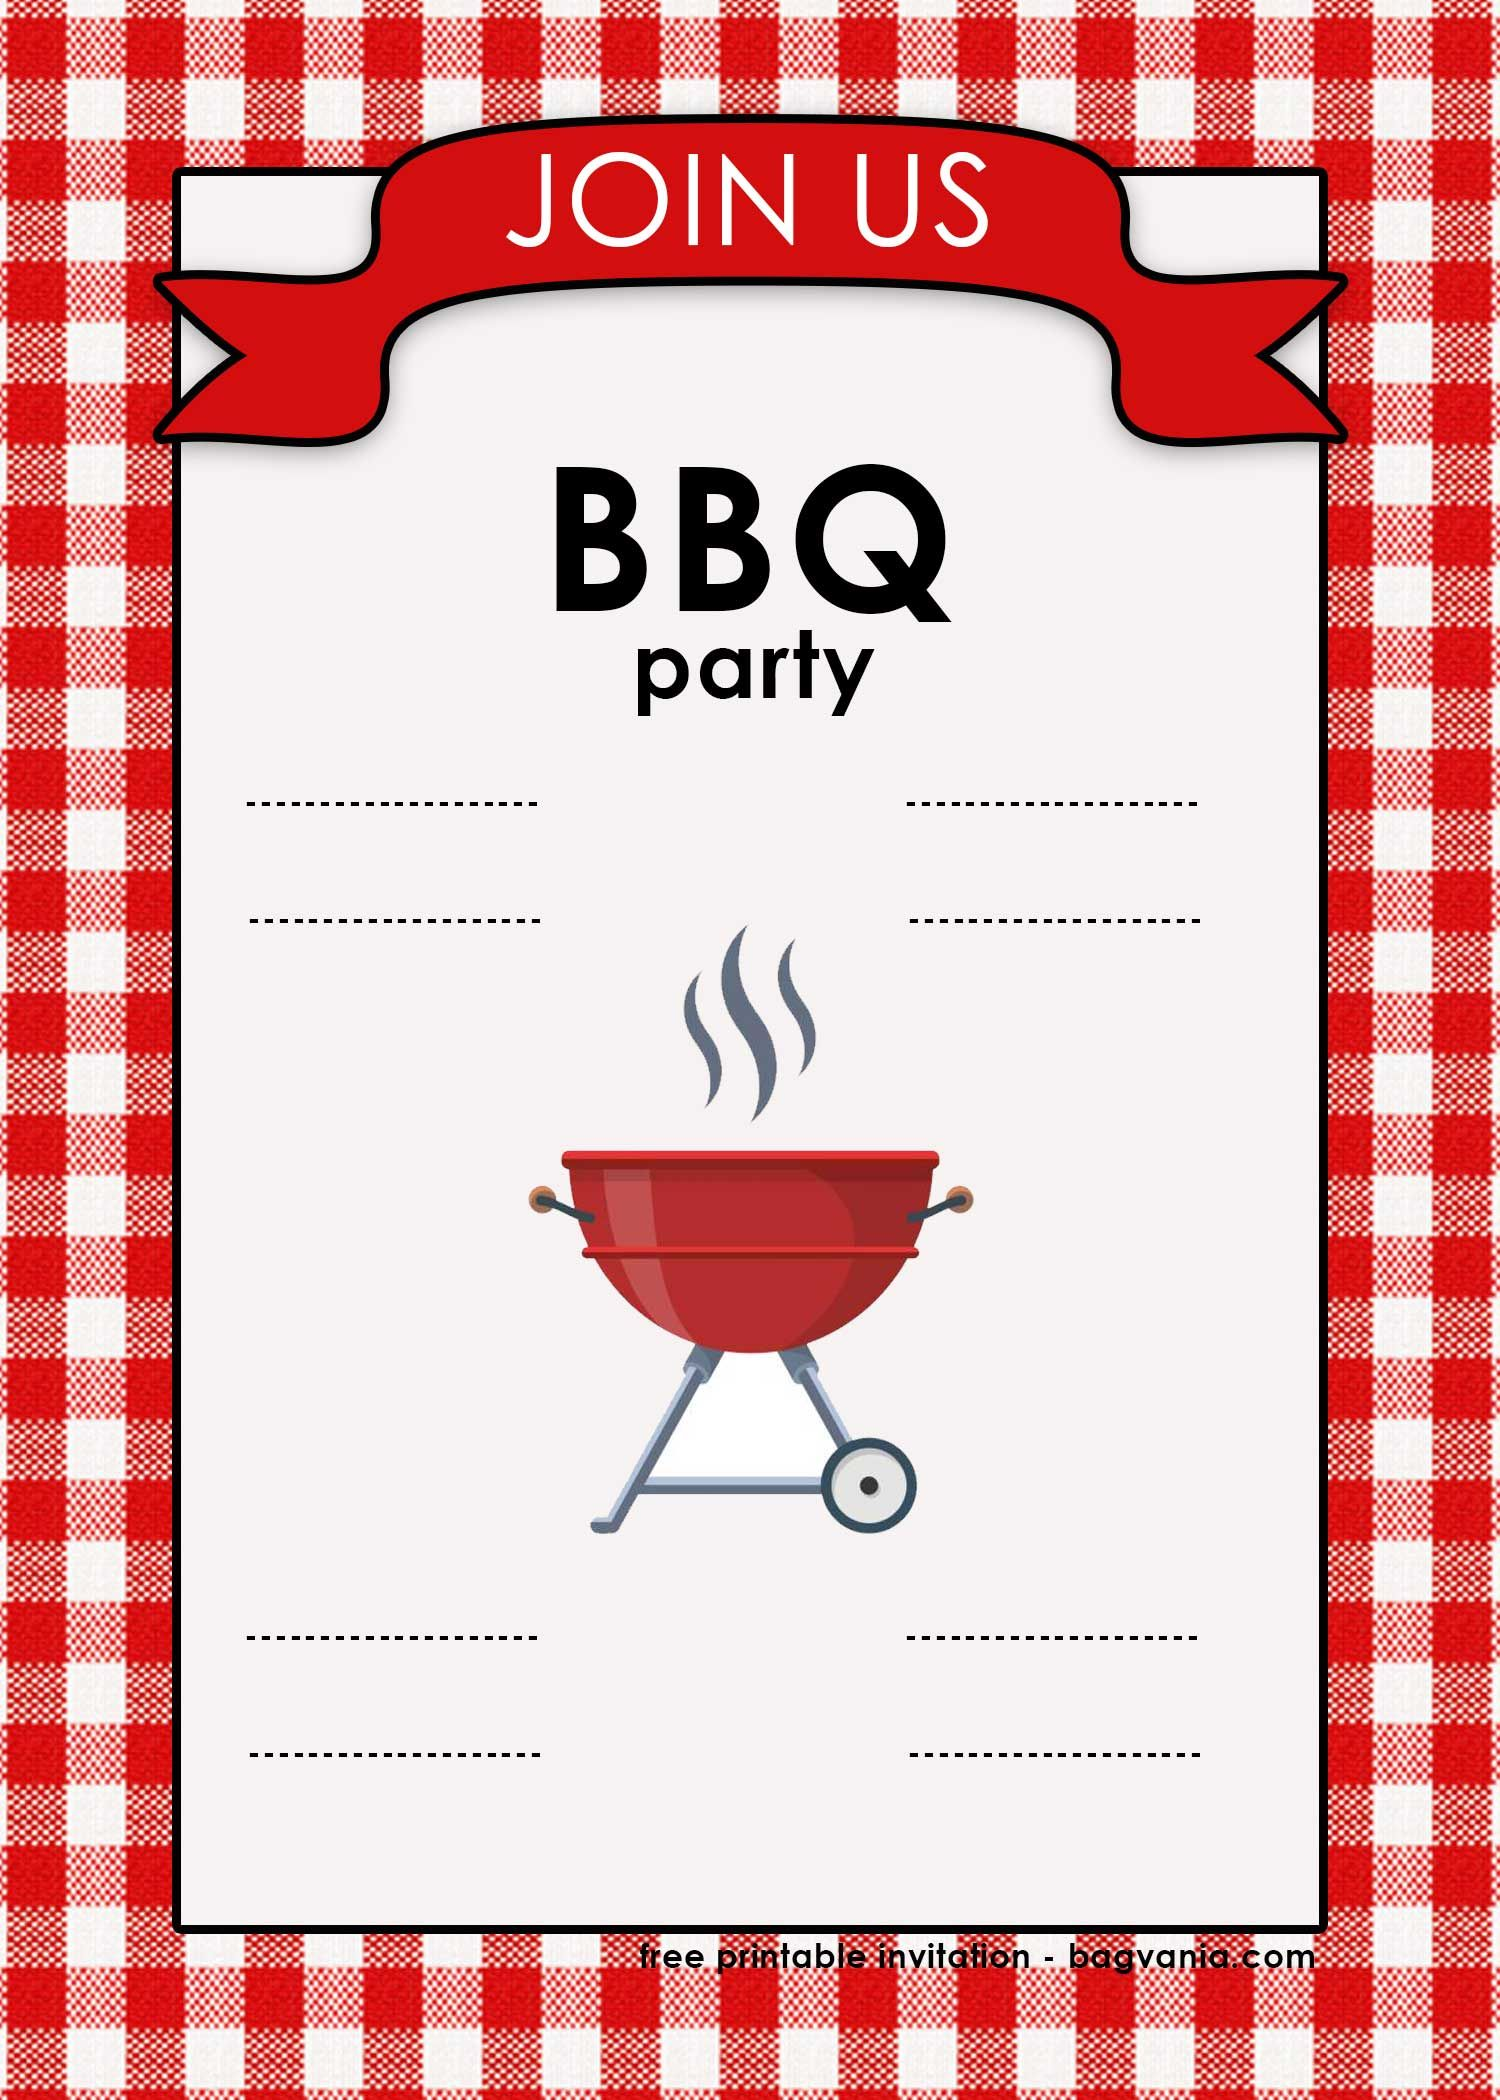 photo about Free Printable Bbq Invitations named Totally free Printable BBQ Invitation Template for Your Get-togethers